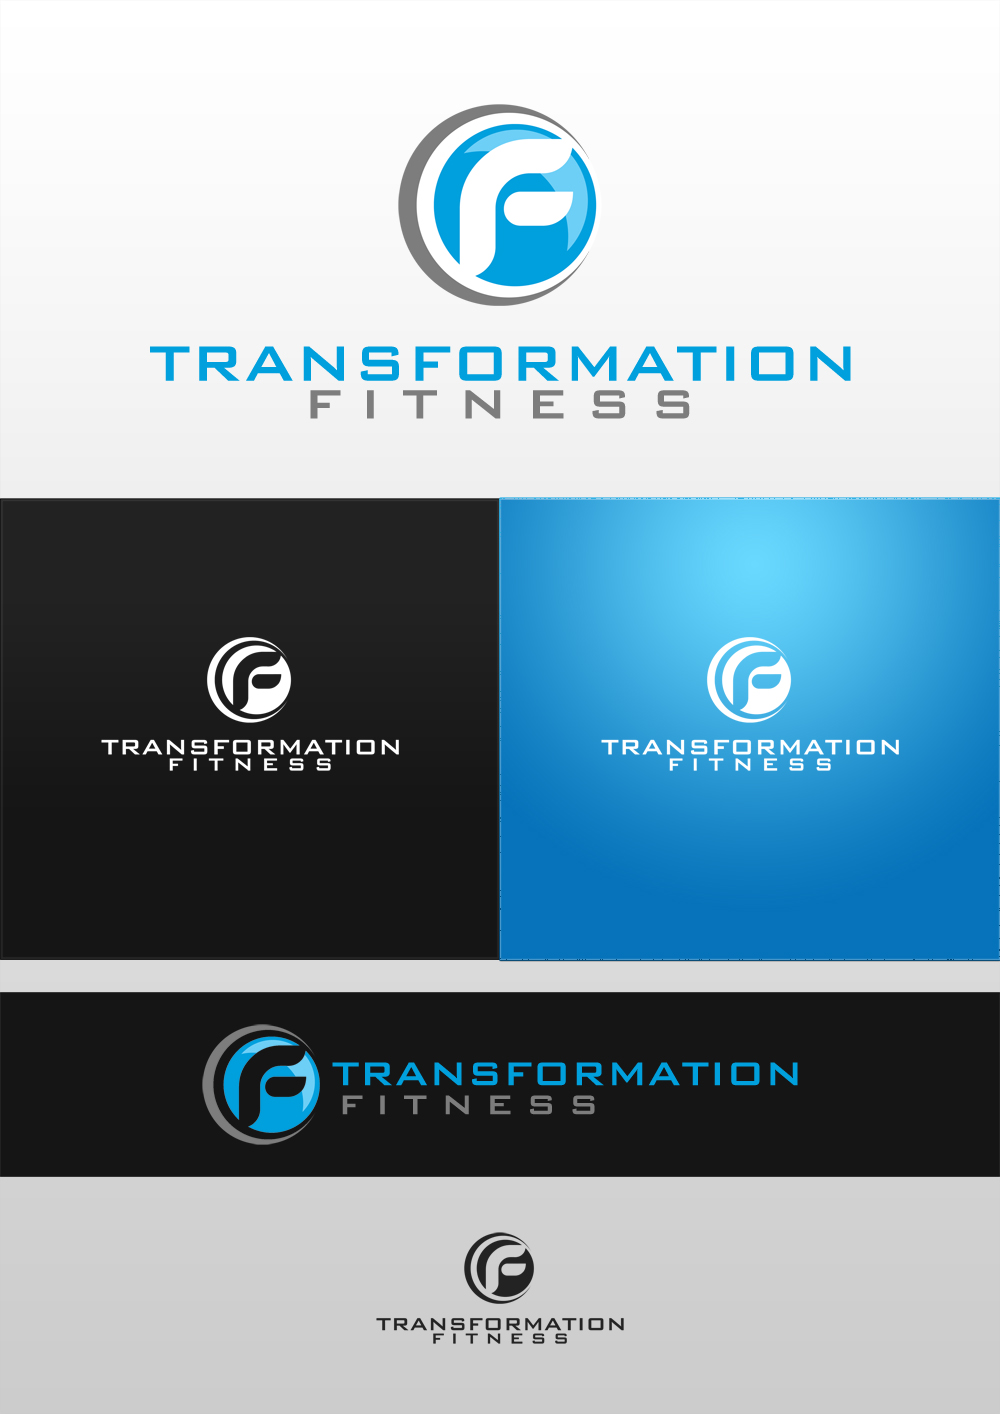 Logo Design by Brian Montejo - Entry No. 28 in the Logo Design Contest Inspiring Logo Design for Transformation fitness.